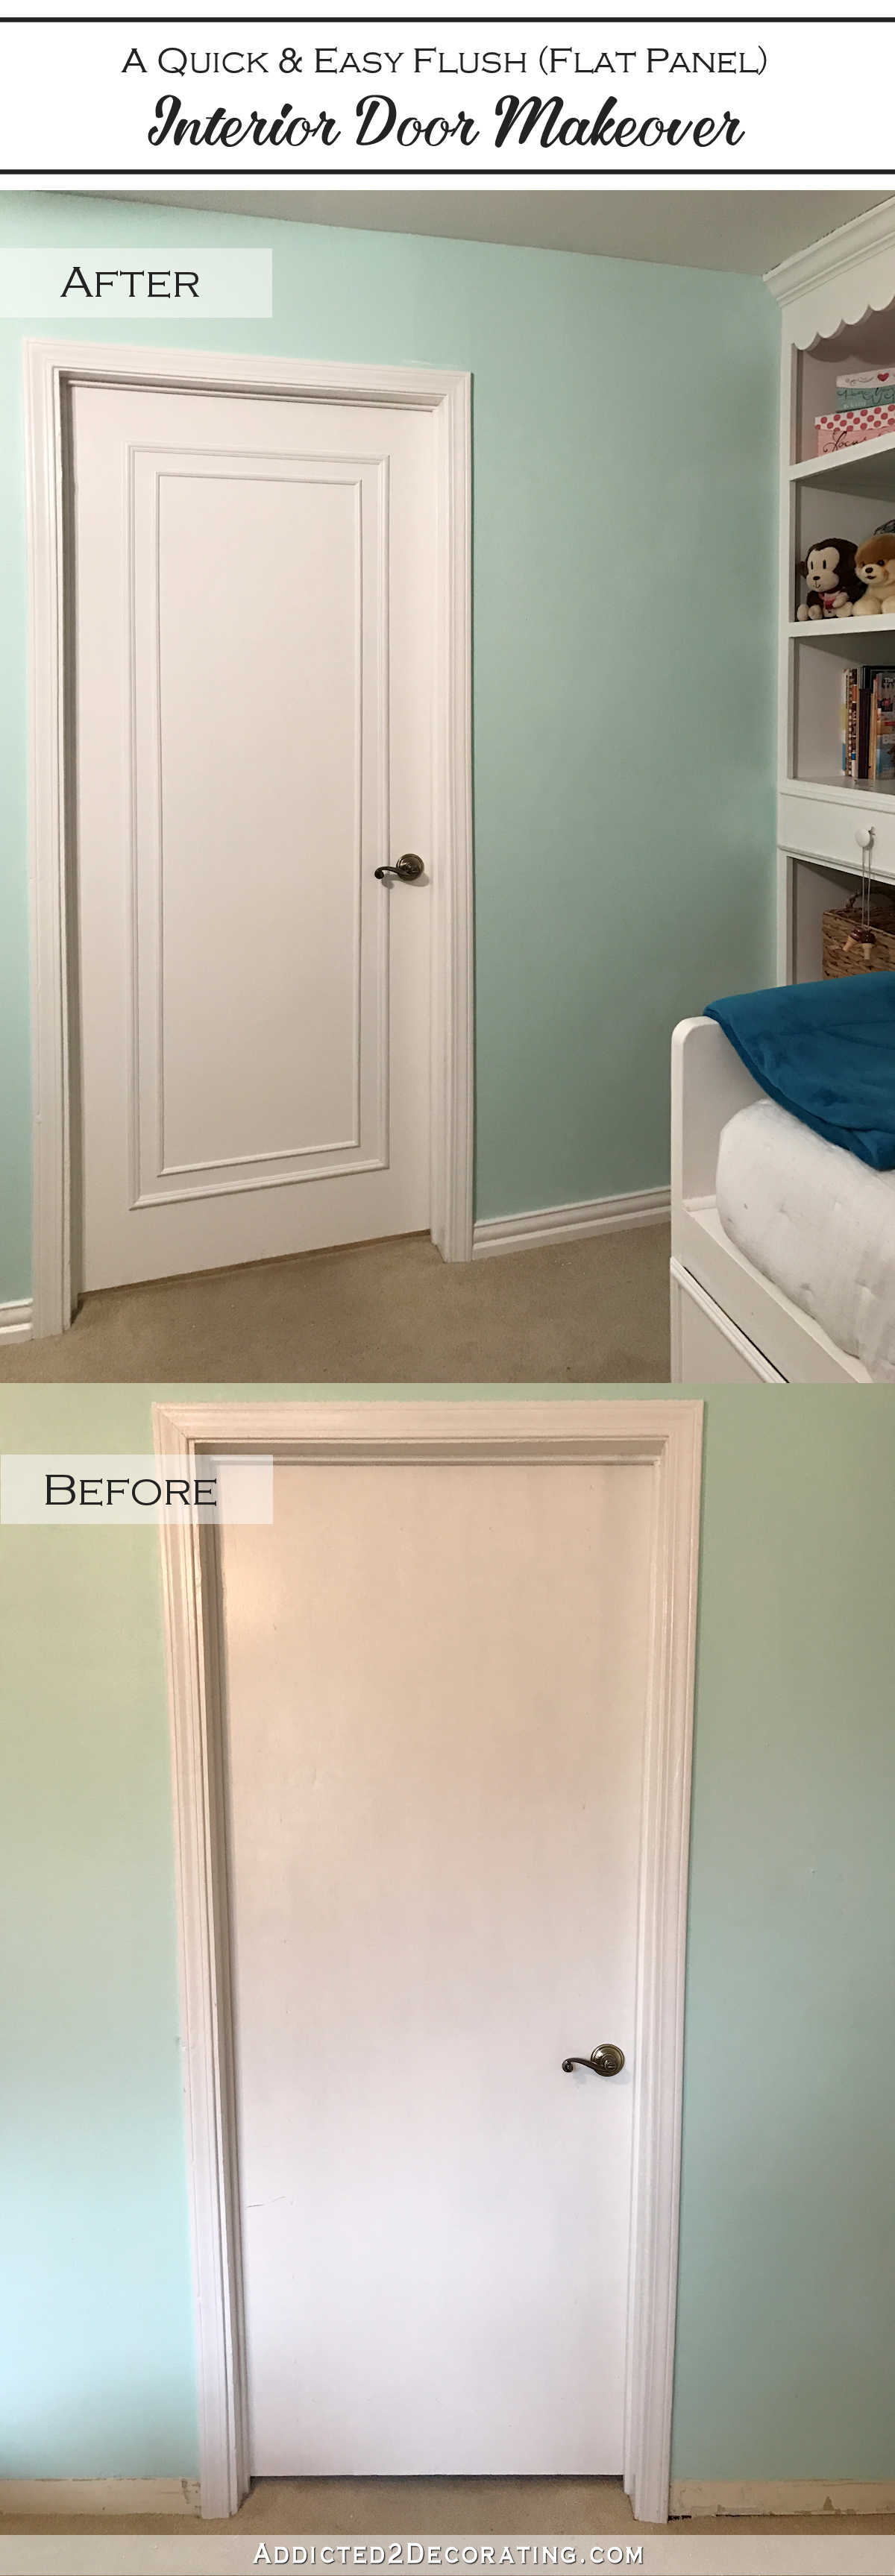 how to update flush interior doors with moulding before and after